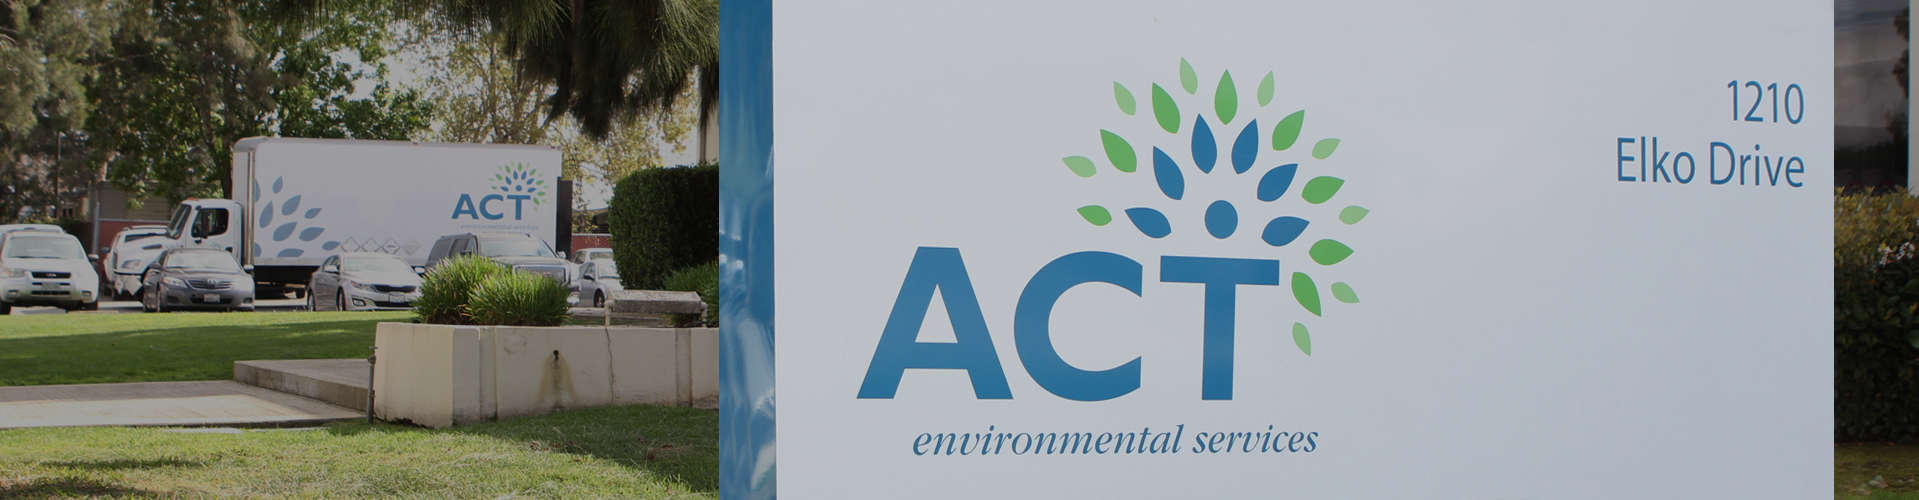 act-banner-new8-1